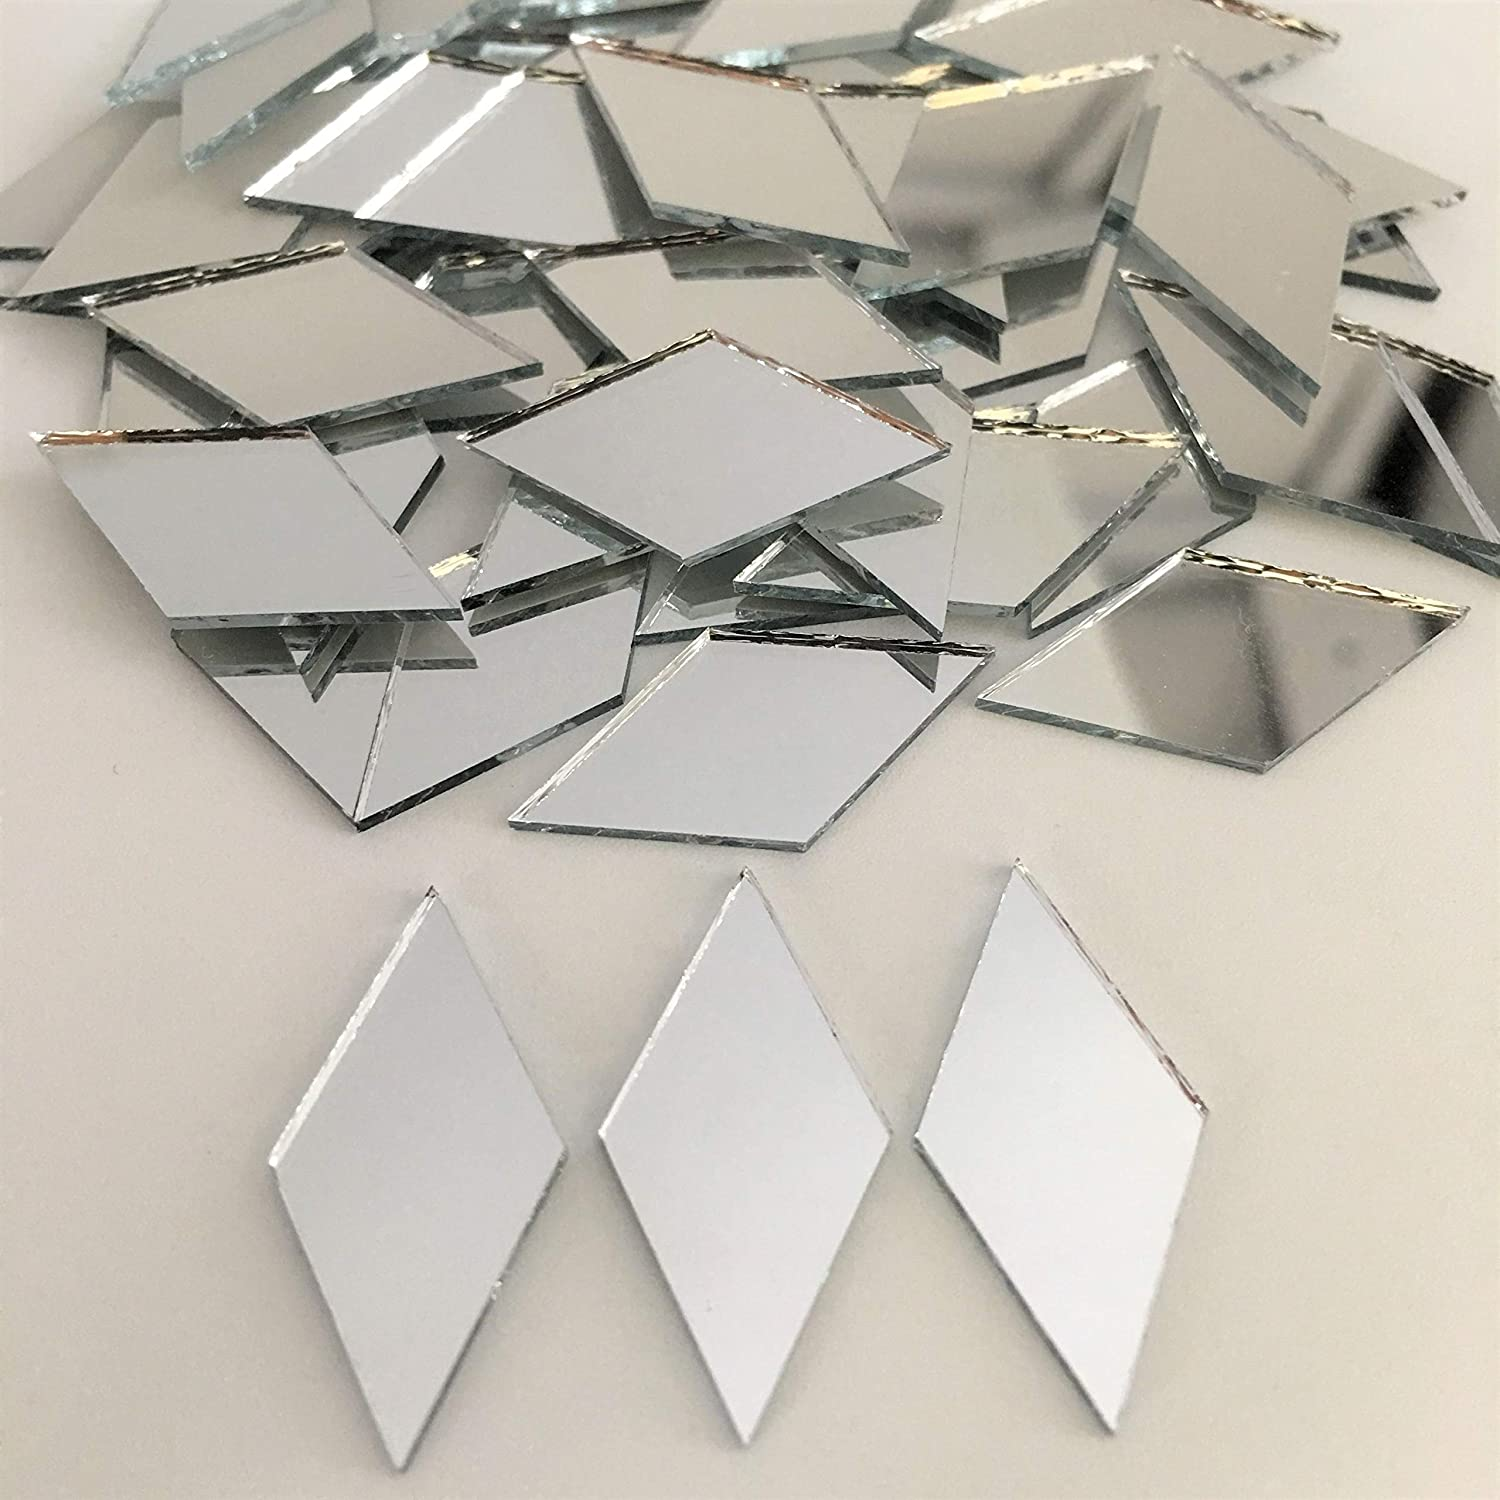 Grey Sparkle Easy /& Fun to craft Great for adults /& kids Mosaic Mirror kit